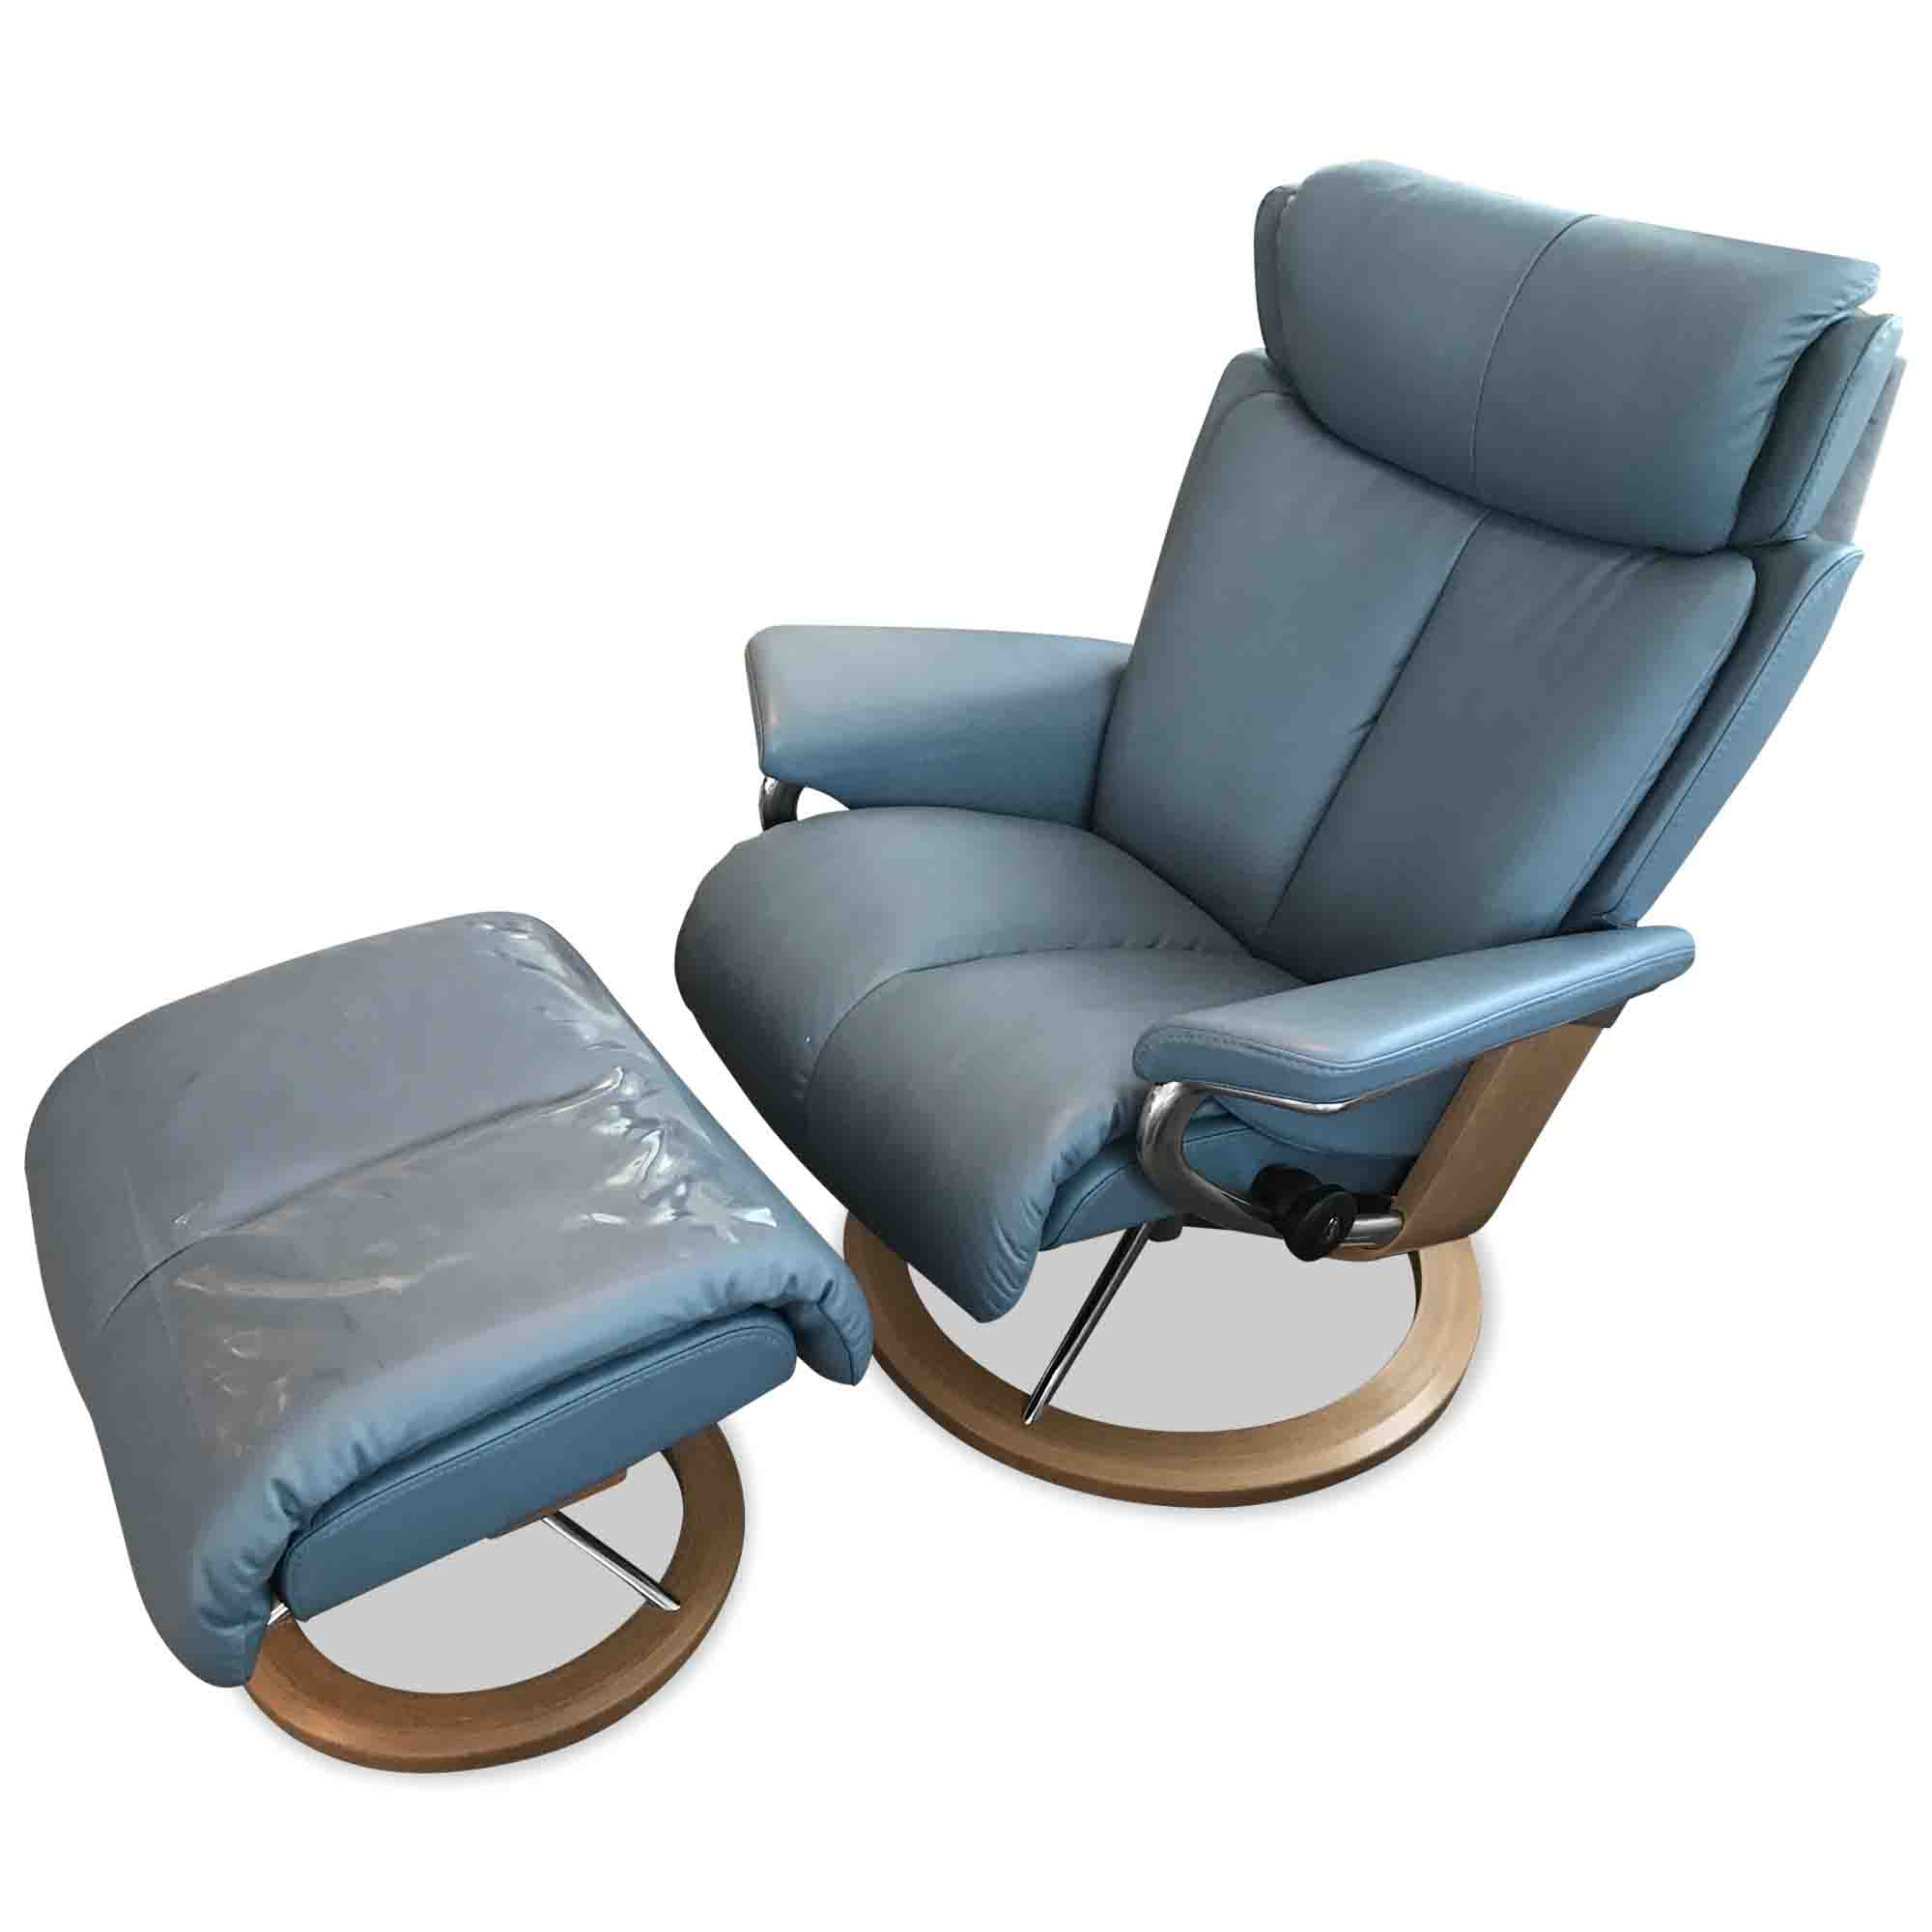 stressless designer sessel magic m signature mit hocker in blau leder holz ebay. Black Bedroom Furniture Sets. Home Design Ideas